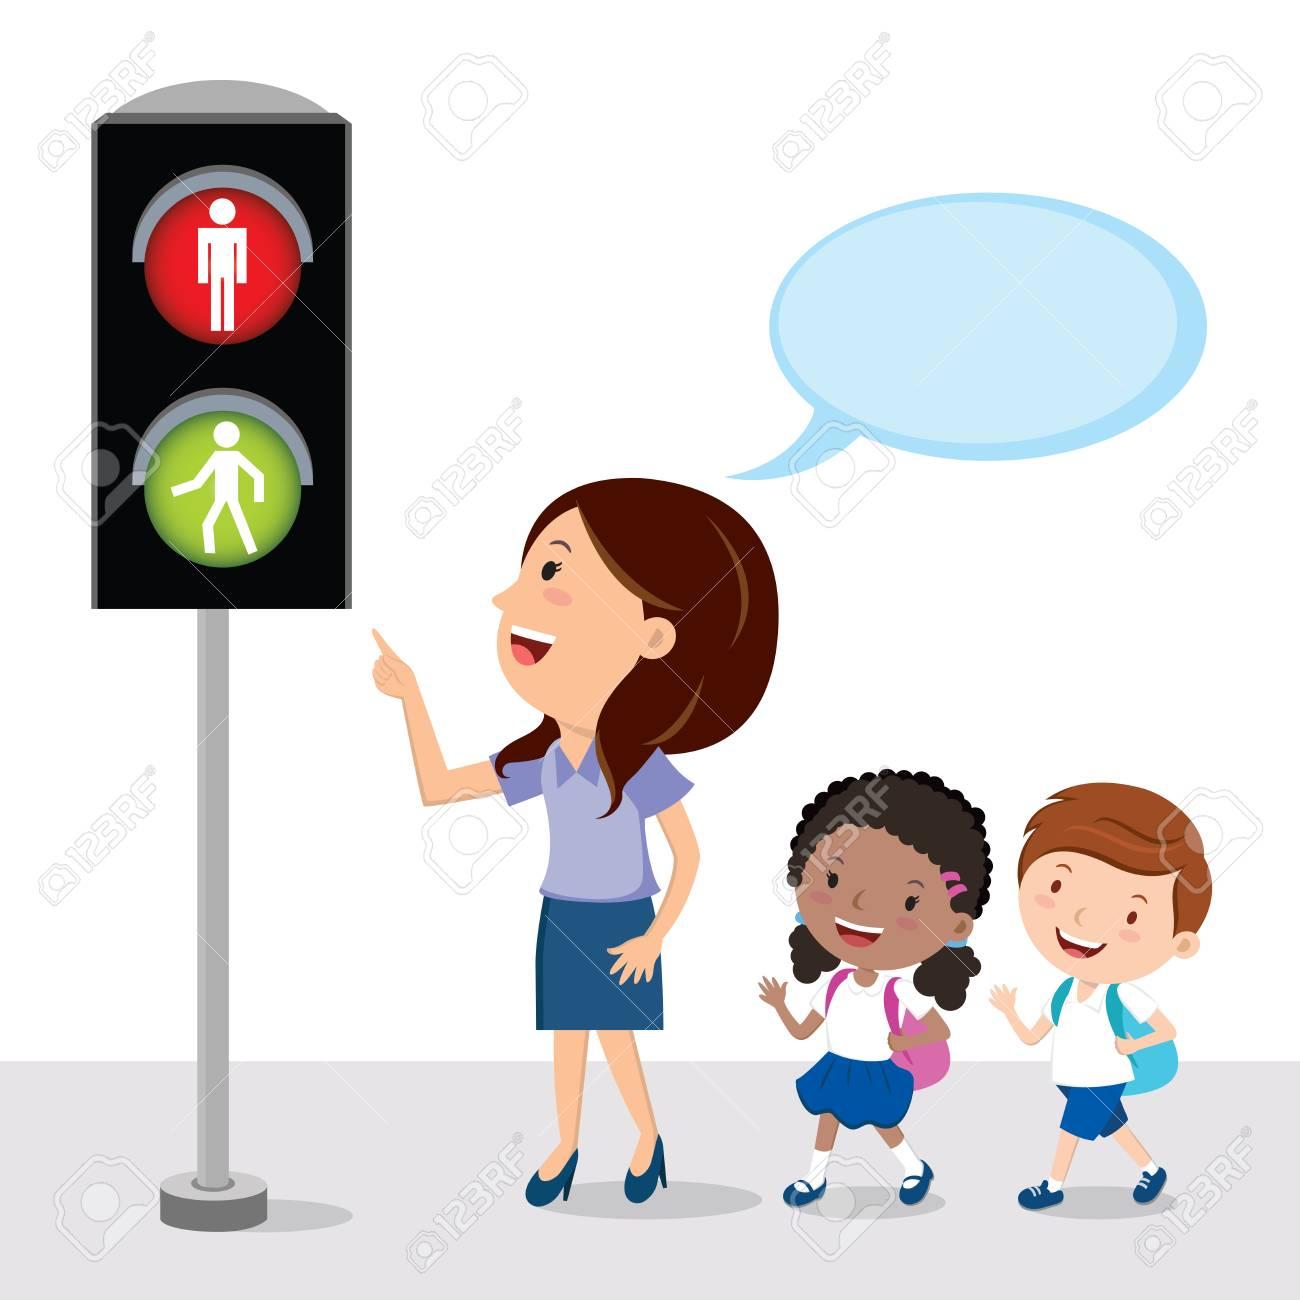 Pedestrian Traffic Light. Teacher Showing The School Kids Traffic ... for pedestrian traffic light clipart  157uhy